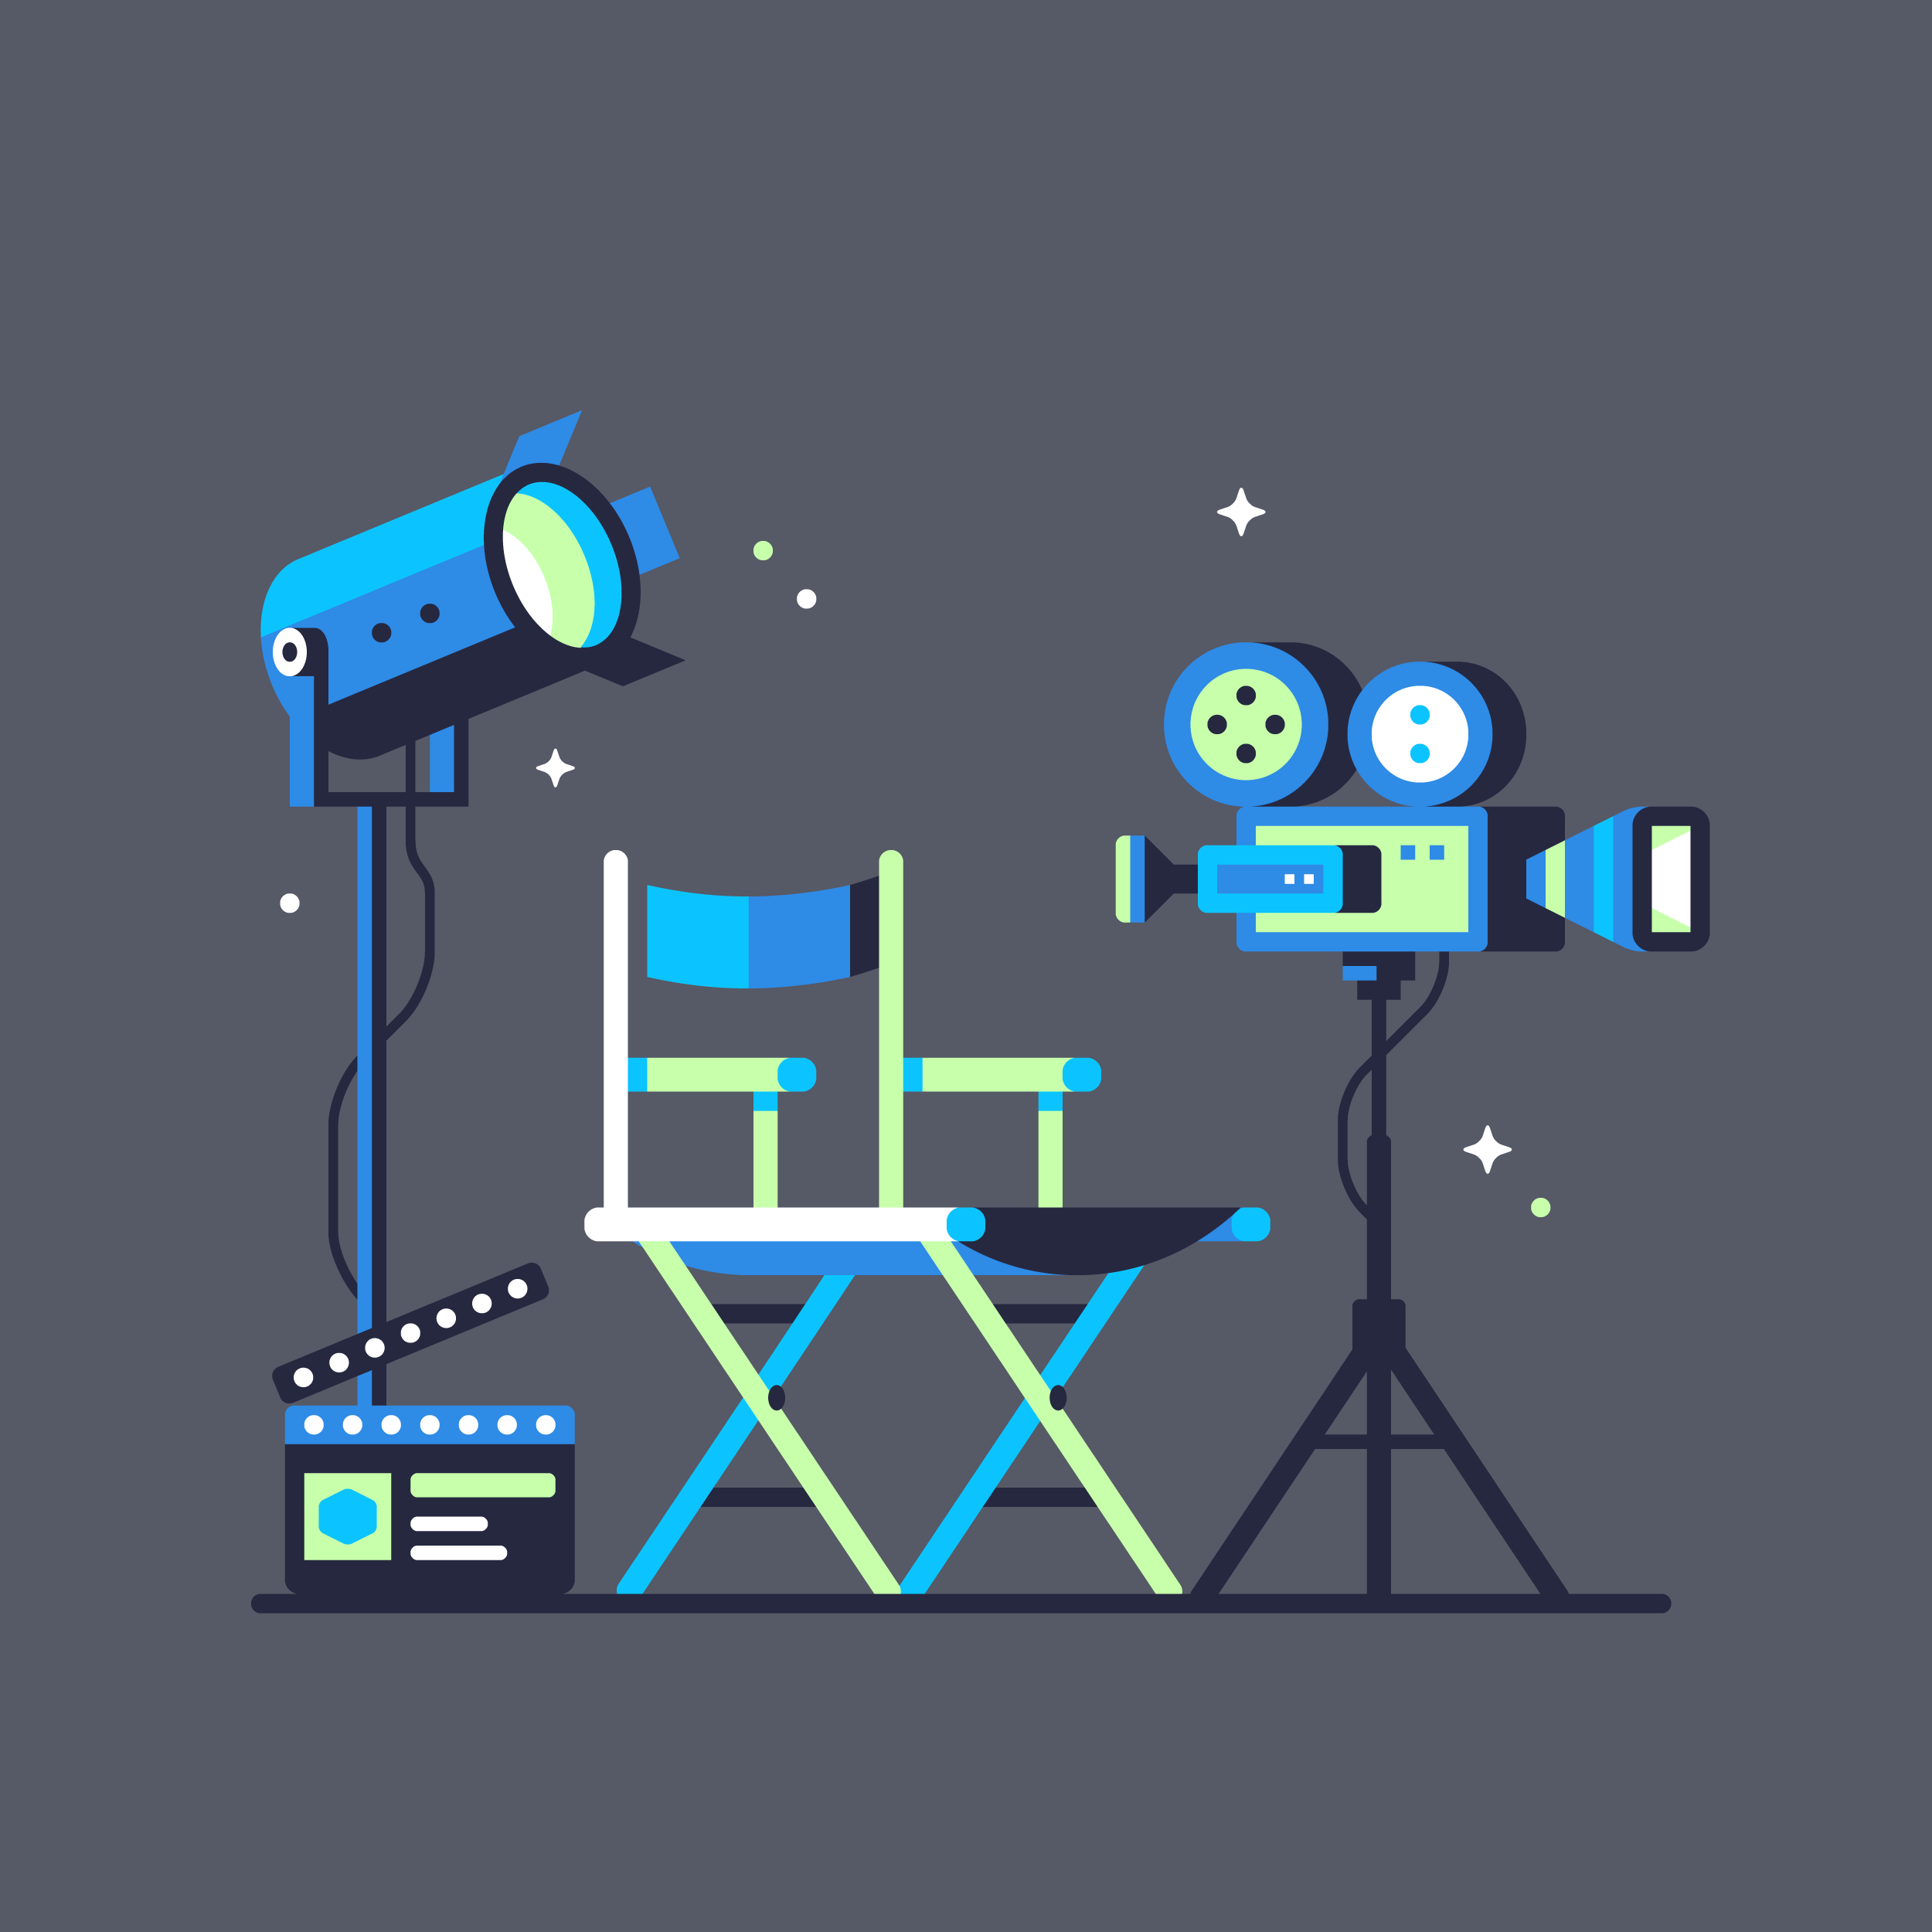 Ui8 cinema Illustration designed by Matt Anderson.